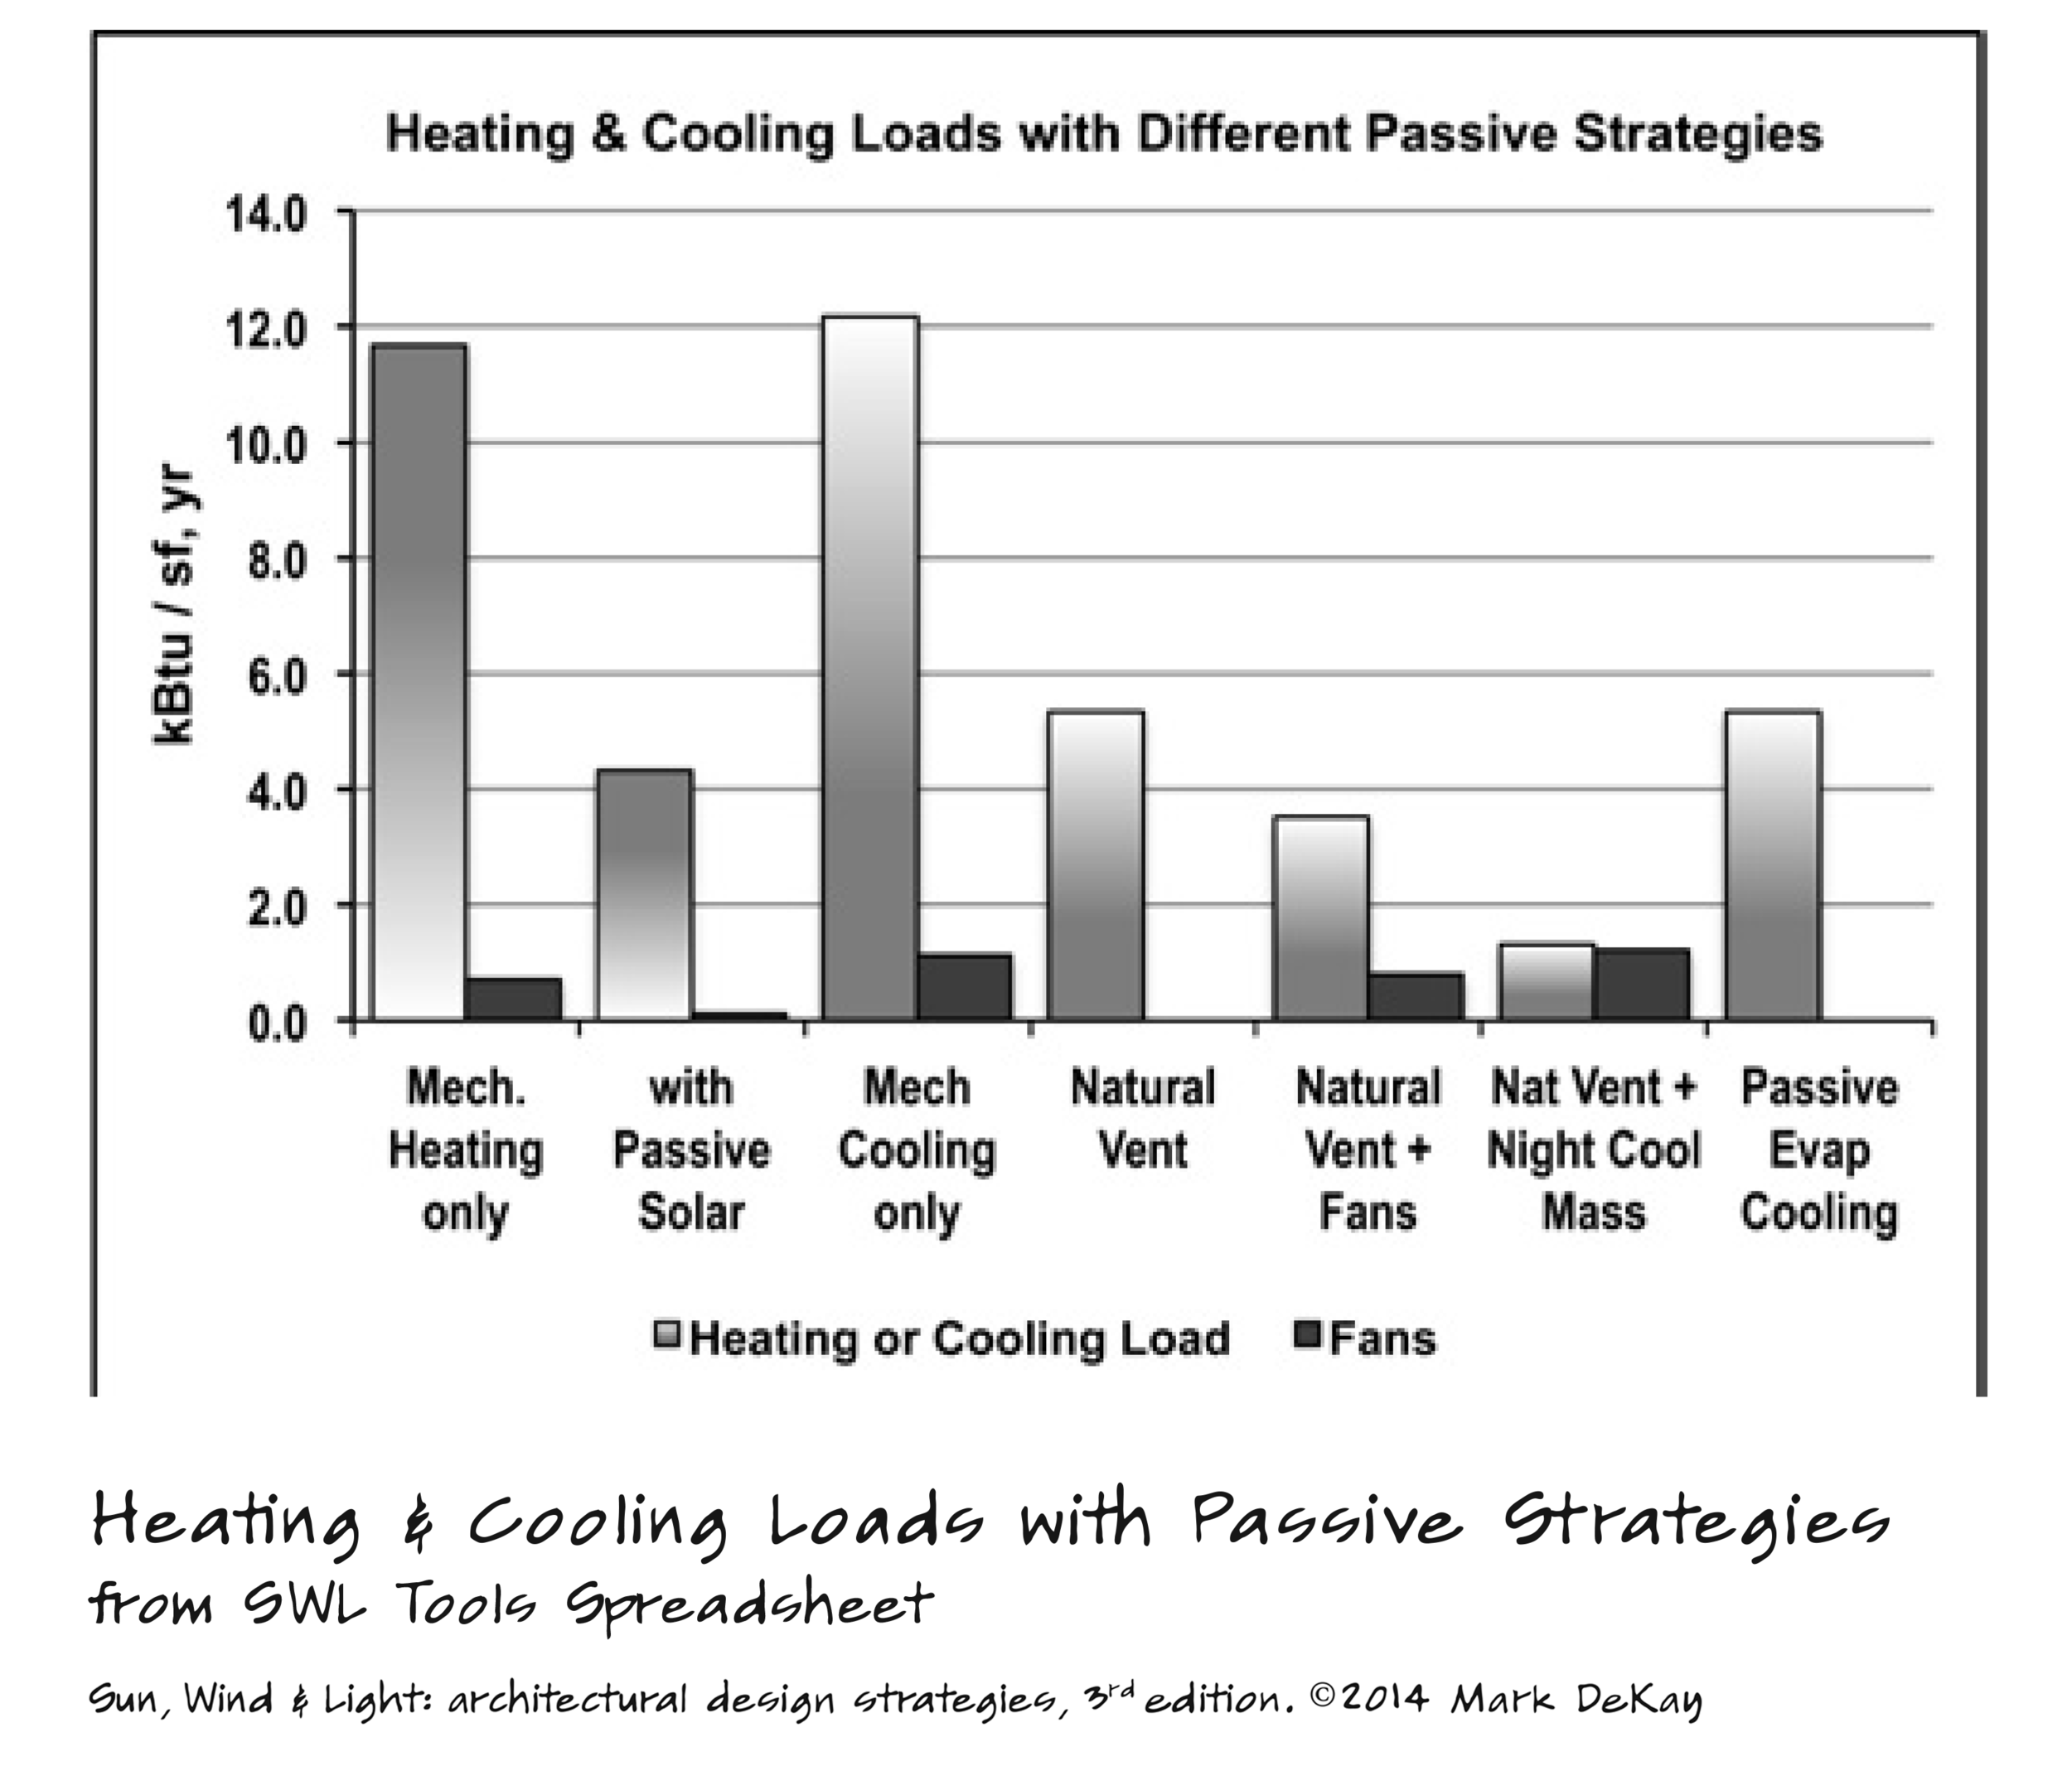 p267 Heating & Cooling Loads, Passive